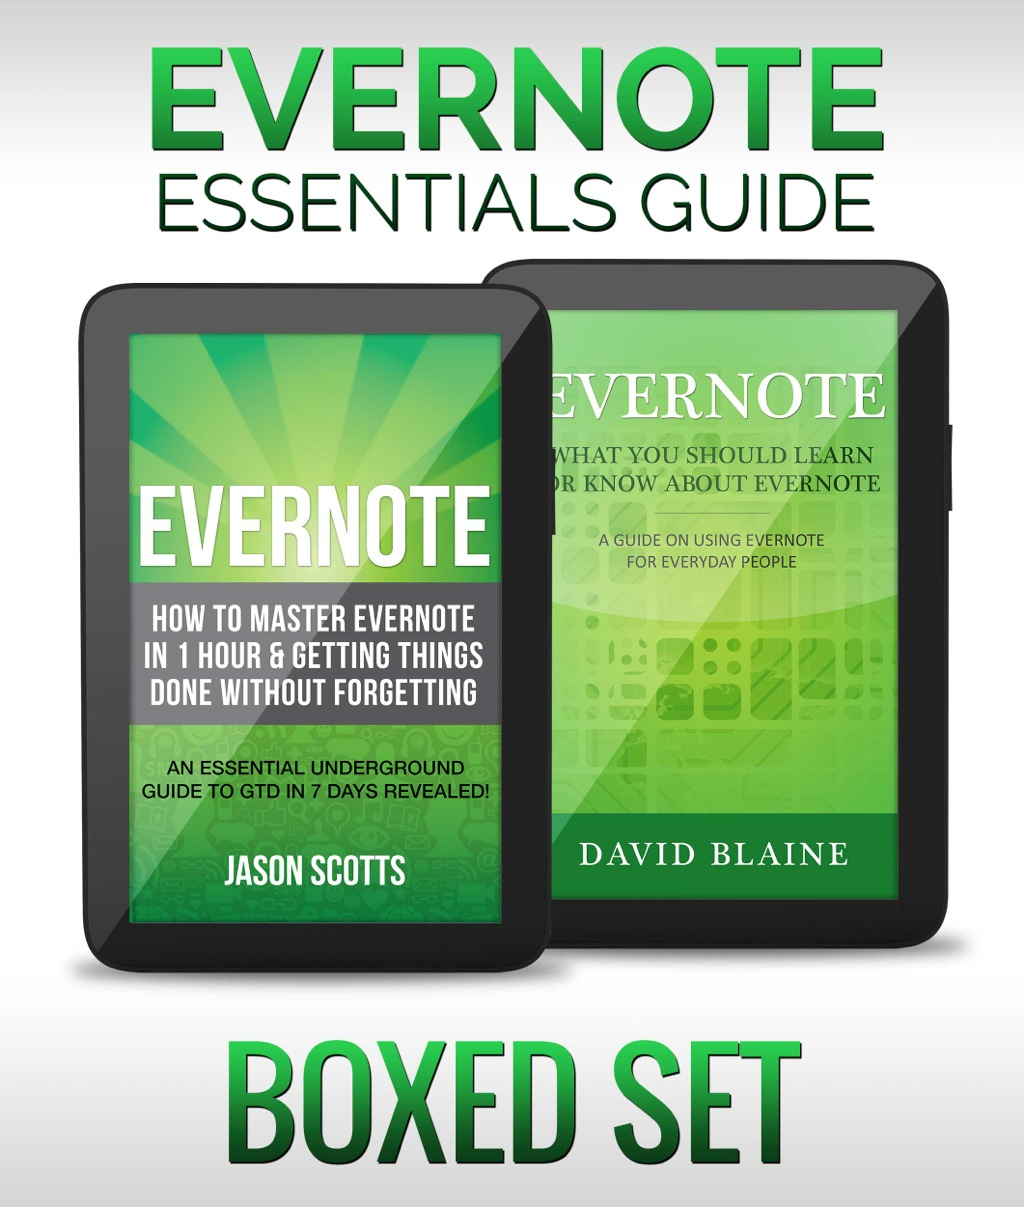 Evernote Essentials Guide (Boxed Set) (eBook)